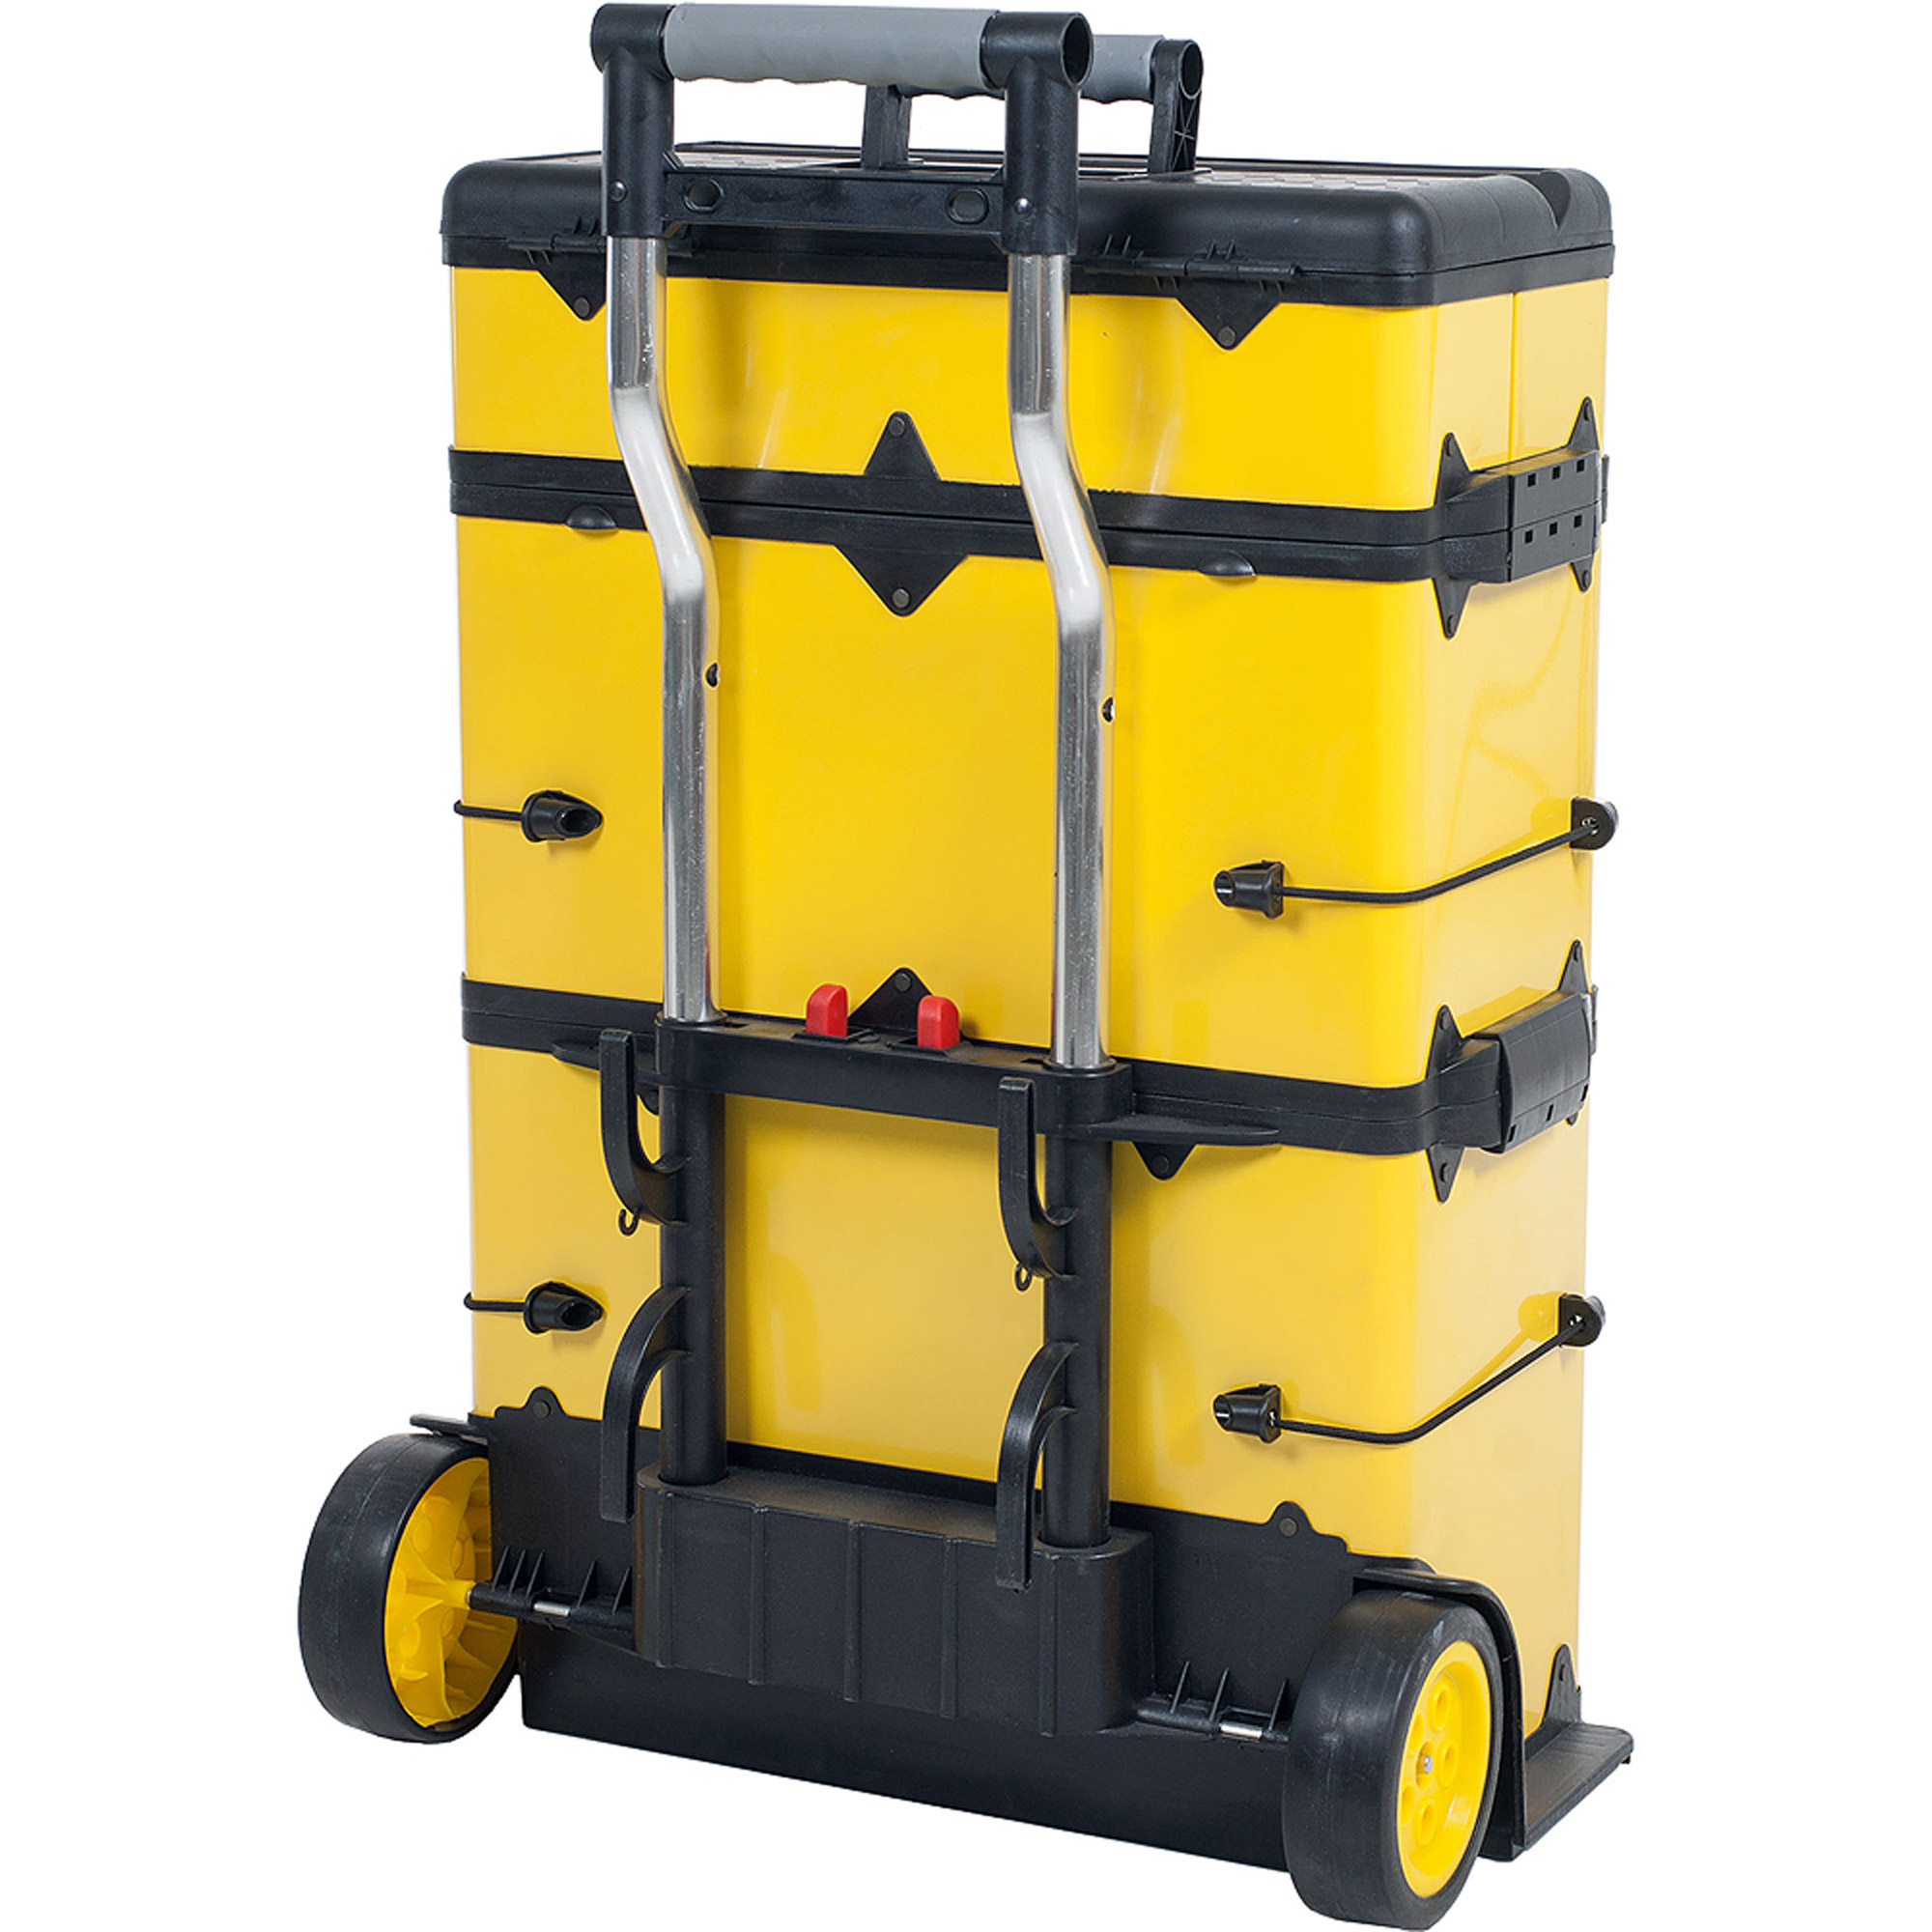 Superb Stalwart Rolling Stacking Portable Metal Trolley Toolbox Chest   Walmart.com